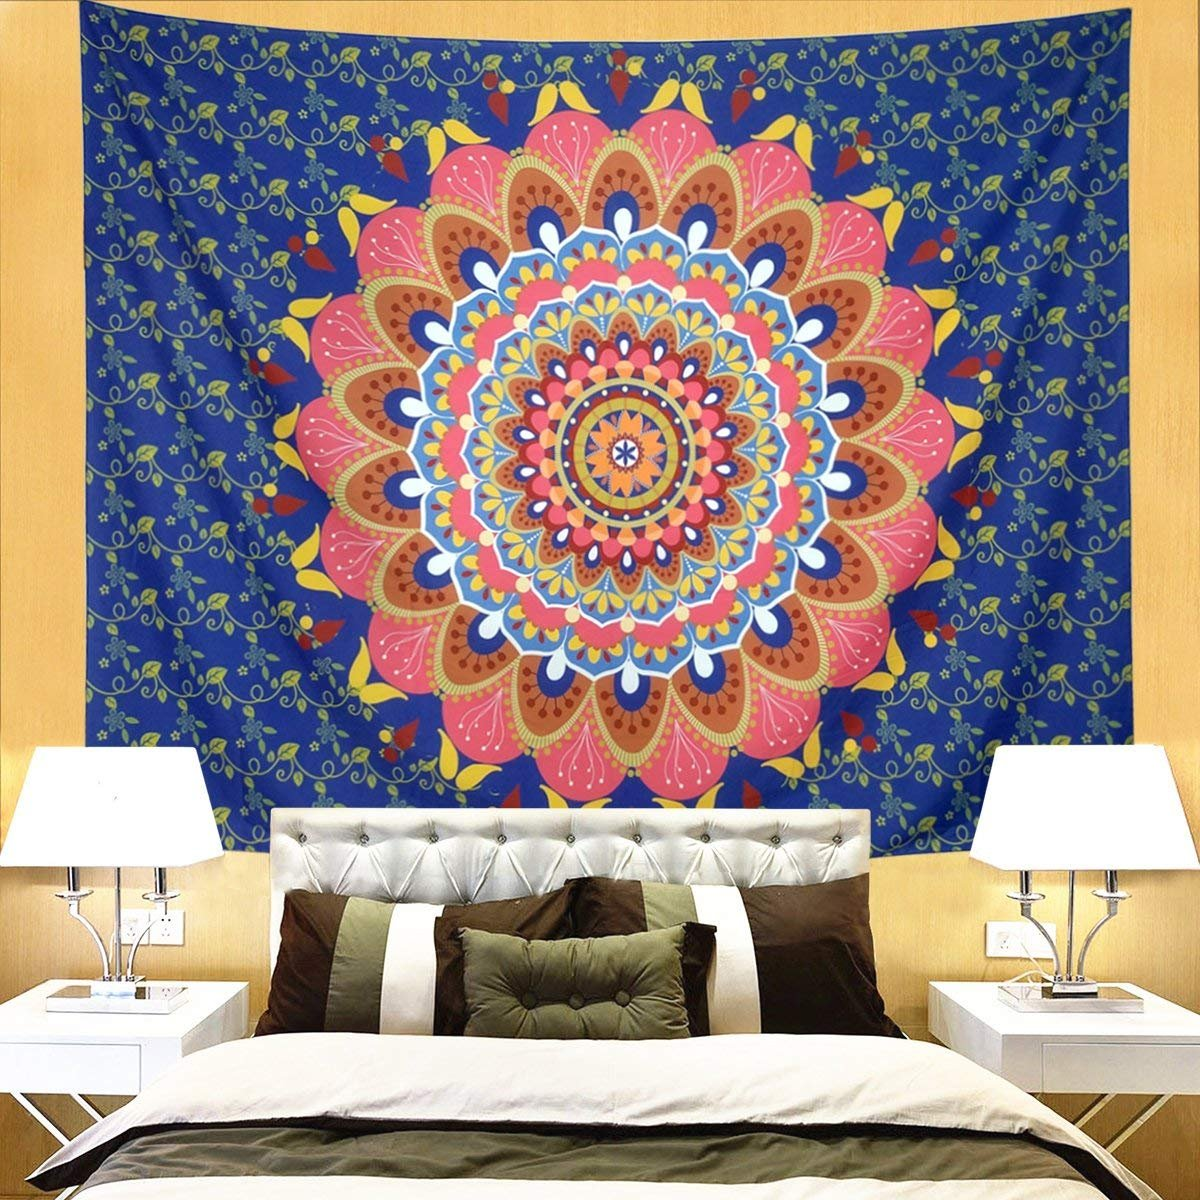 DIPPERION Mandala Tapestry Wall Hanging Blue Tapestry Floral FLower Tapestry Bohemian Mandala Tapestry Indian Hippie Hippy Tapestries Psychedelic Tapestry Wall Tapestry